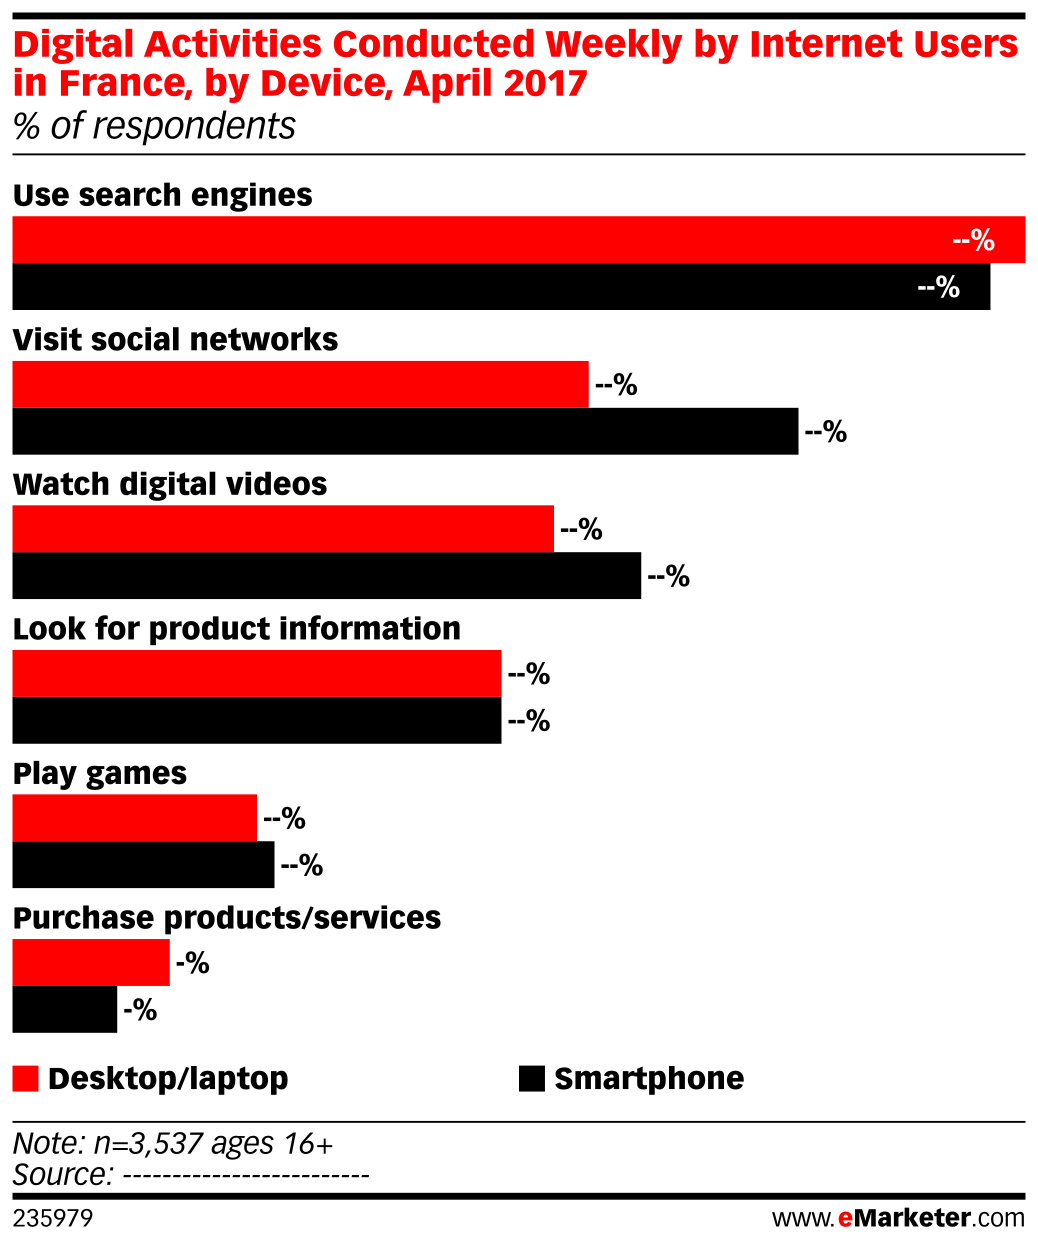 Digital Activities Conducted Weekly by Internet Users in France, by Device, April 2017 (% of respondents)